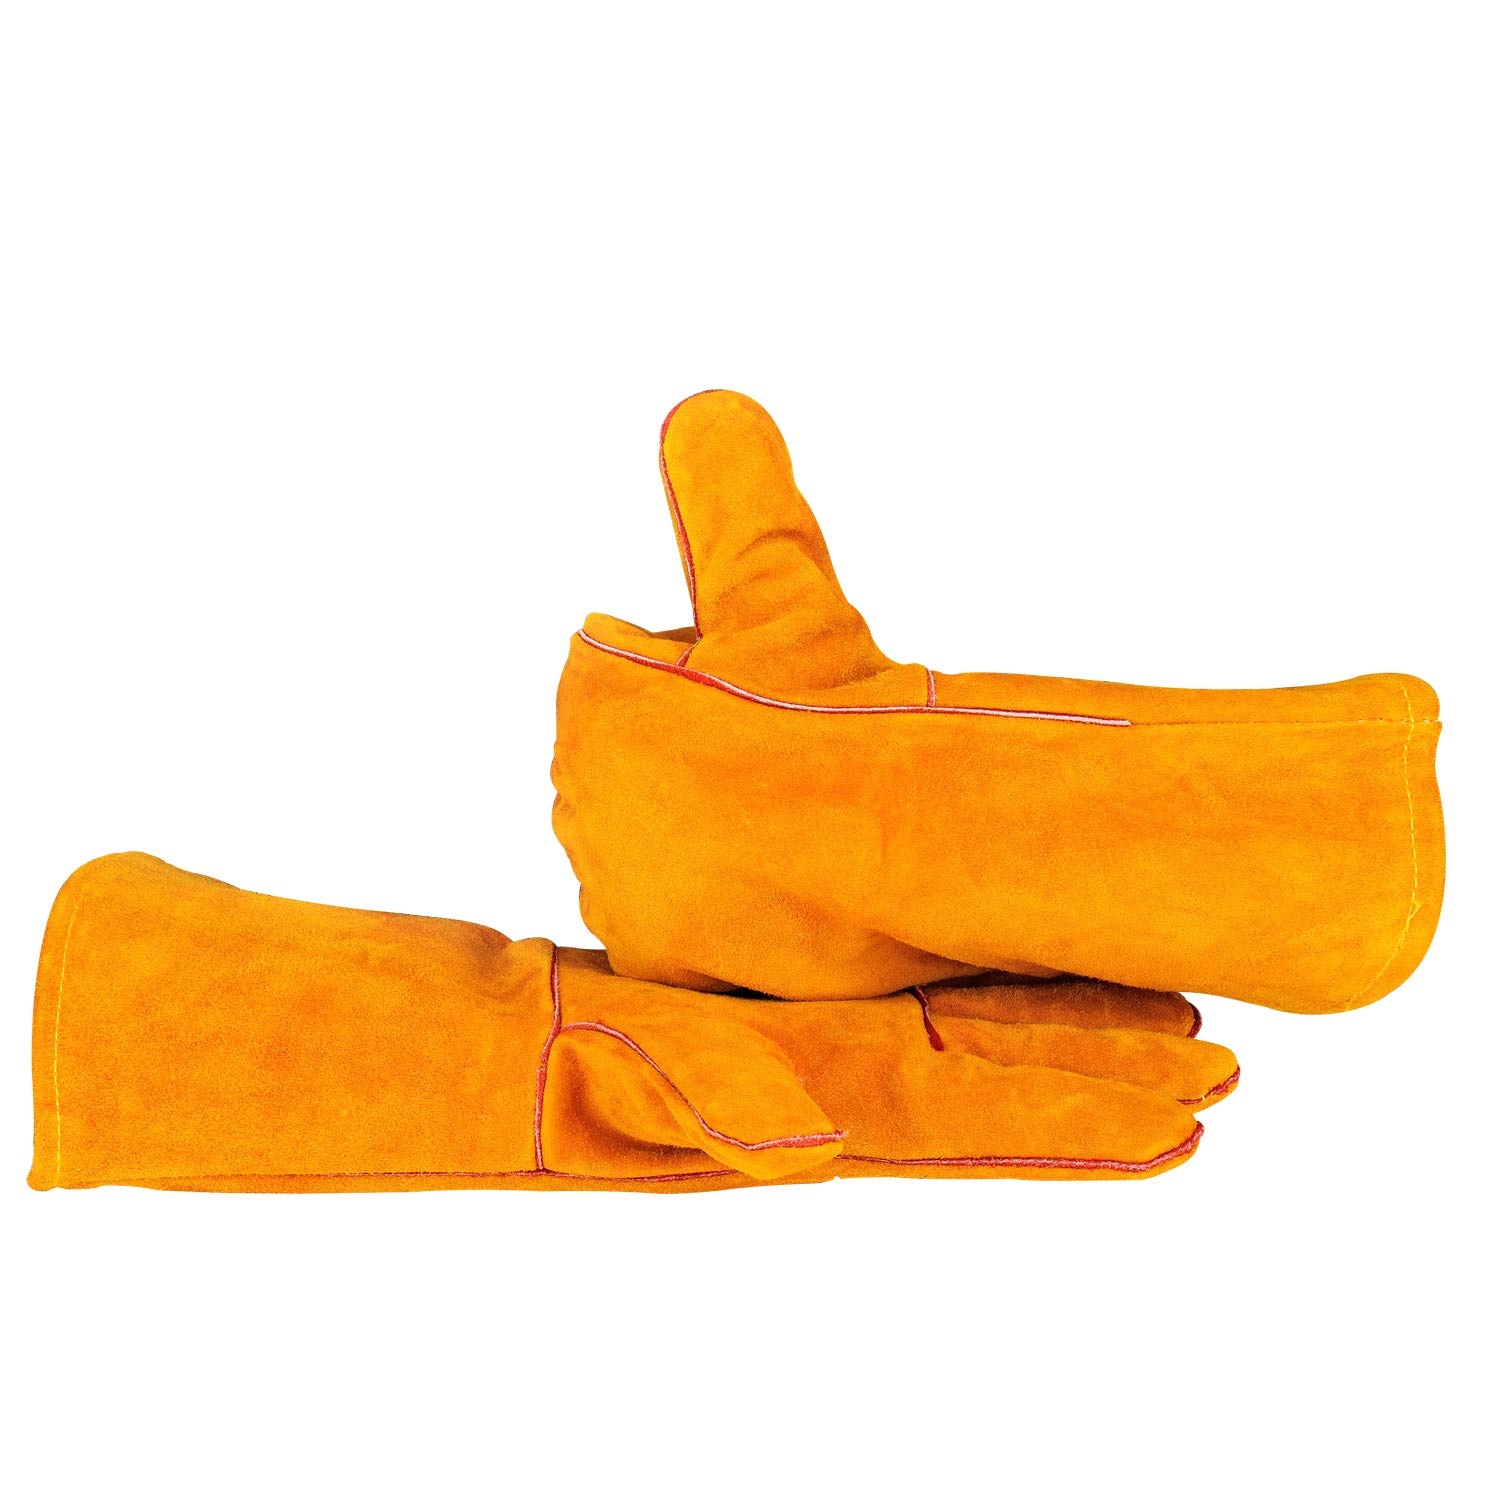 Welding Gloves Mig/Large Heat-Resistant Flame Retardant Quality Lined Leather Forearm Protection Kevlar Stitching 14' Jinhua Xiangzu tools Co. LTD